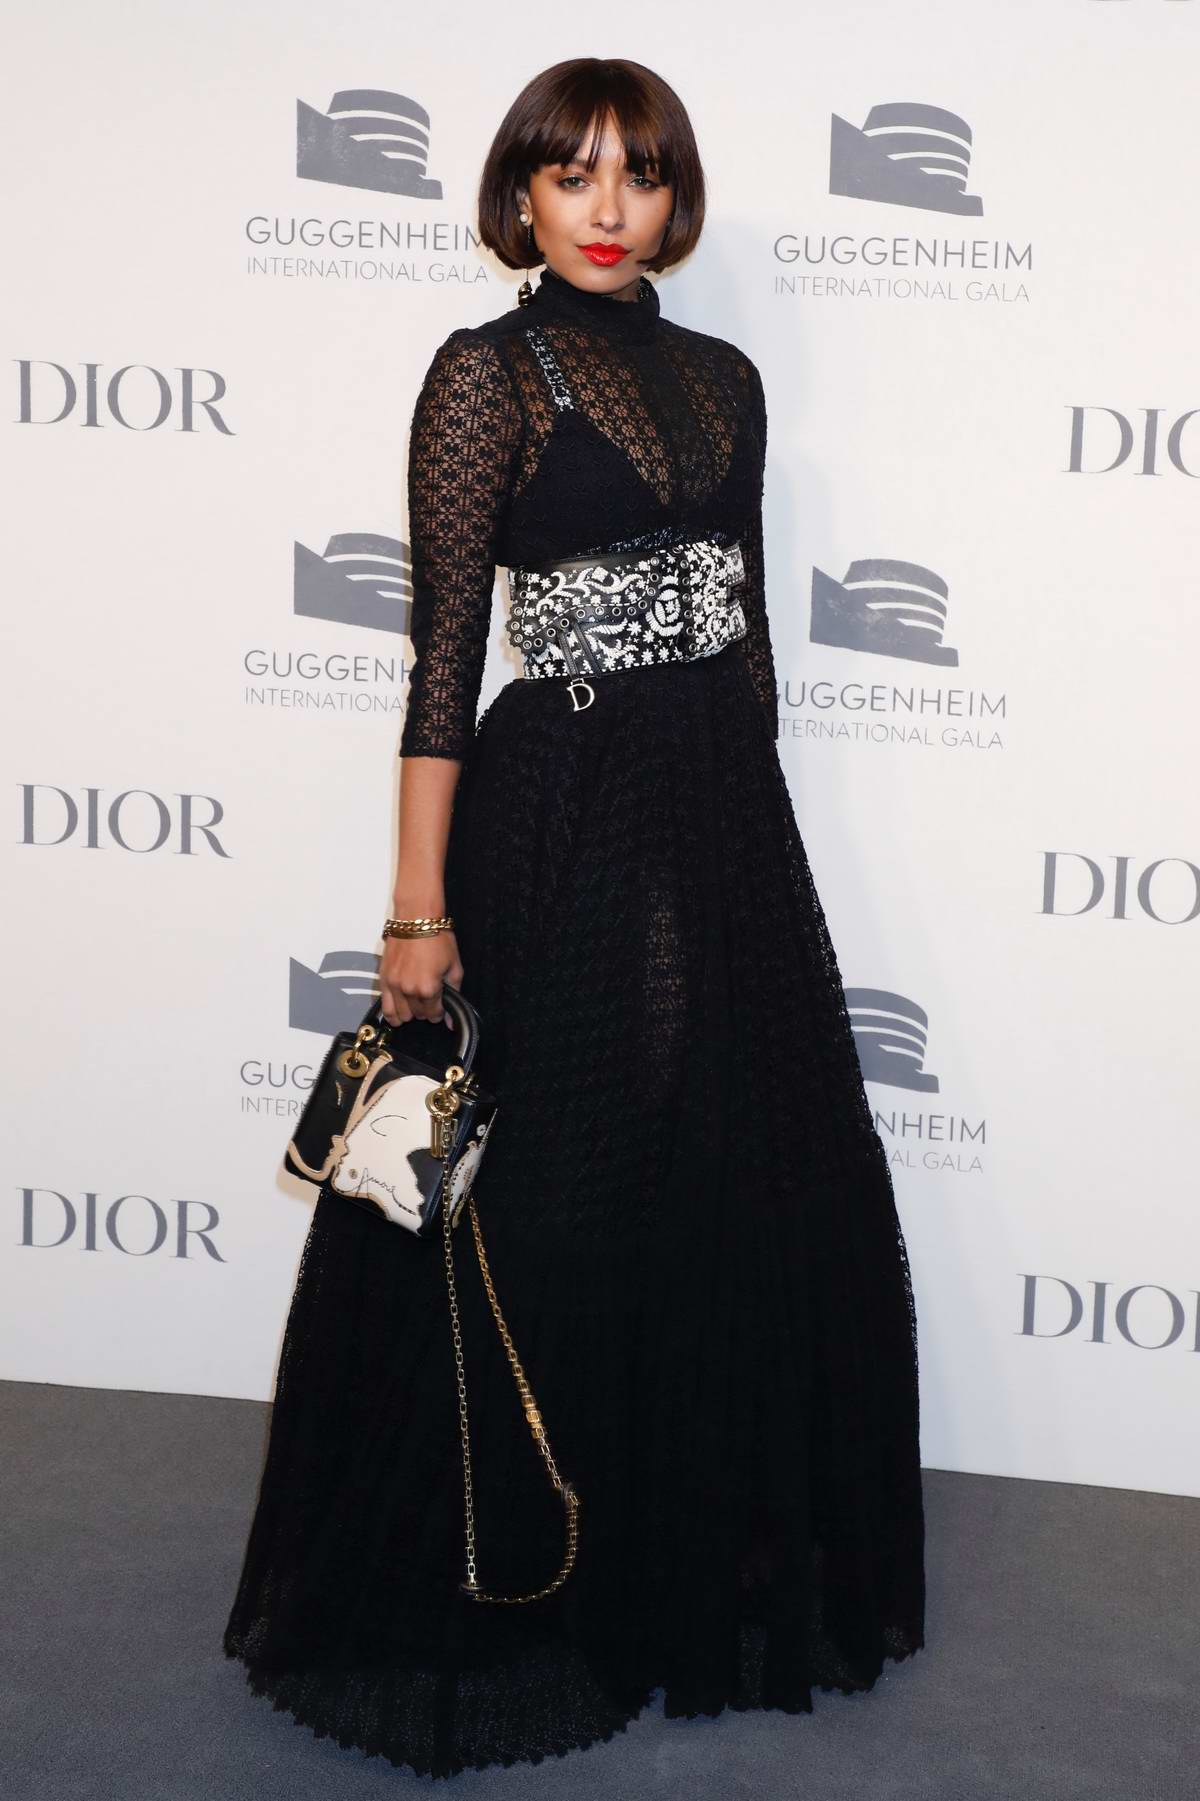 Kat Graham attends Guggenheim International Gala Pre-Party hosted by Dior in New York City